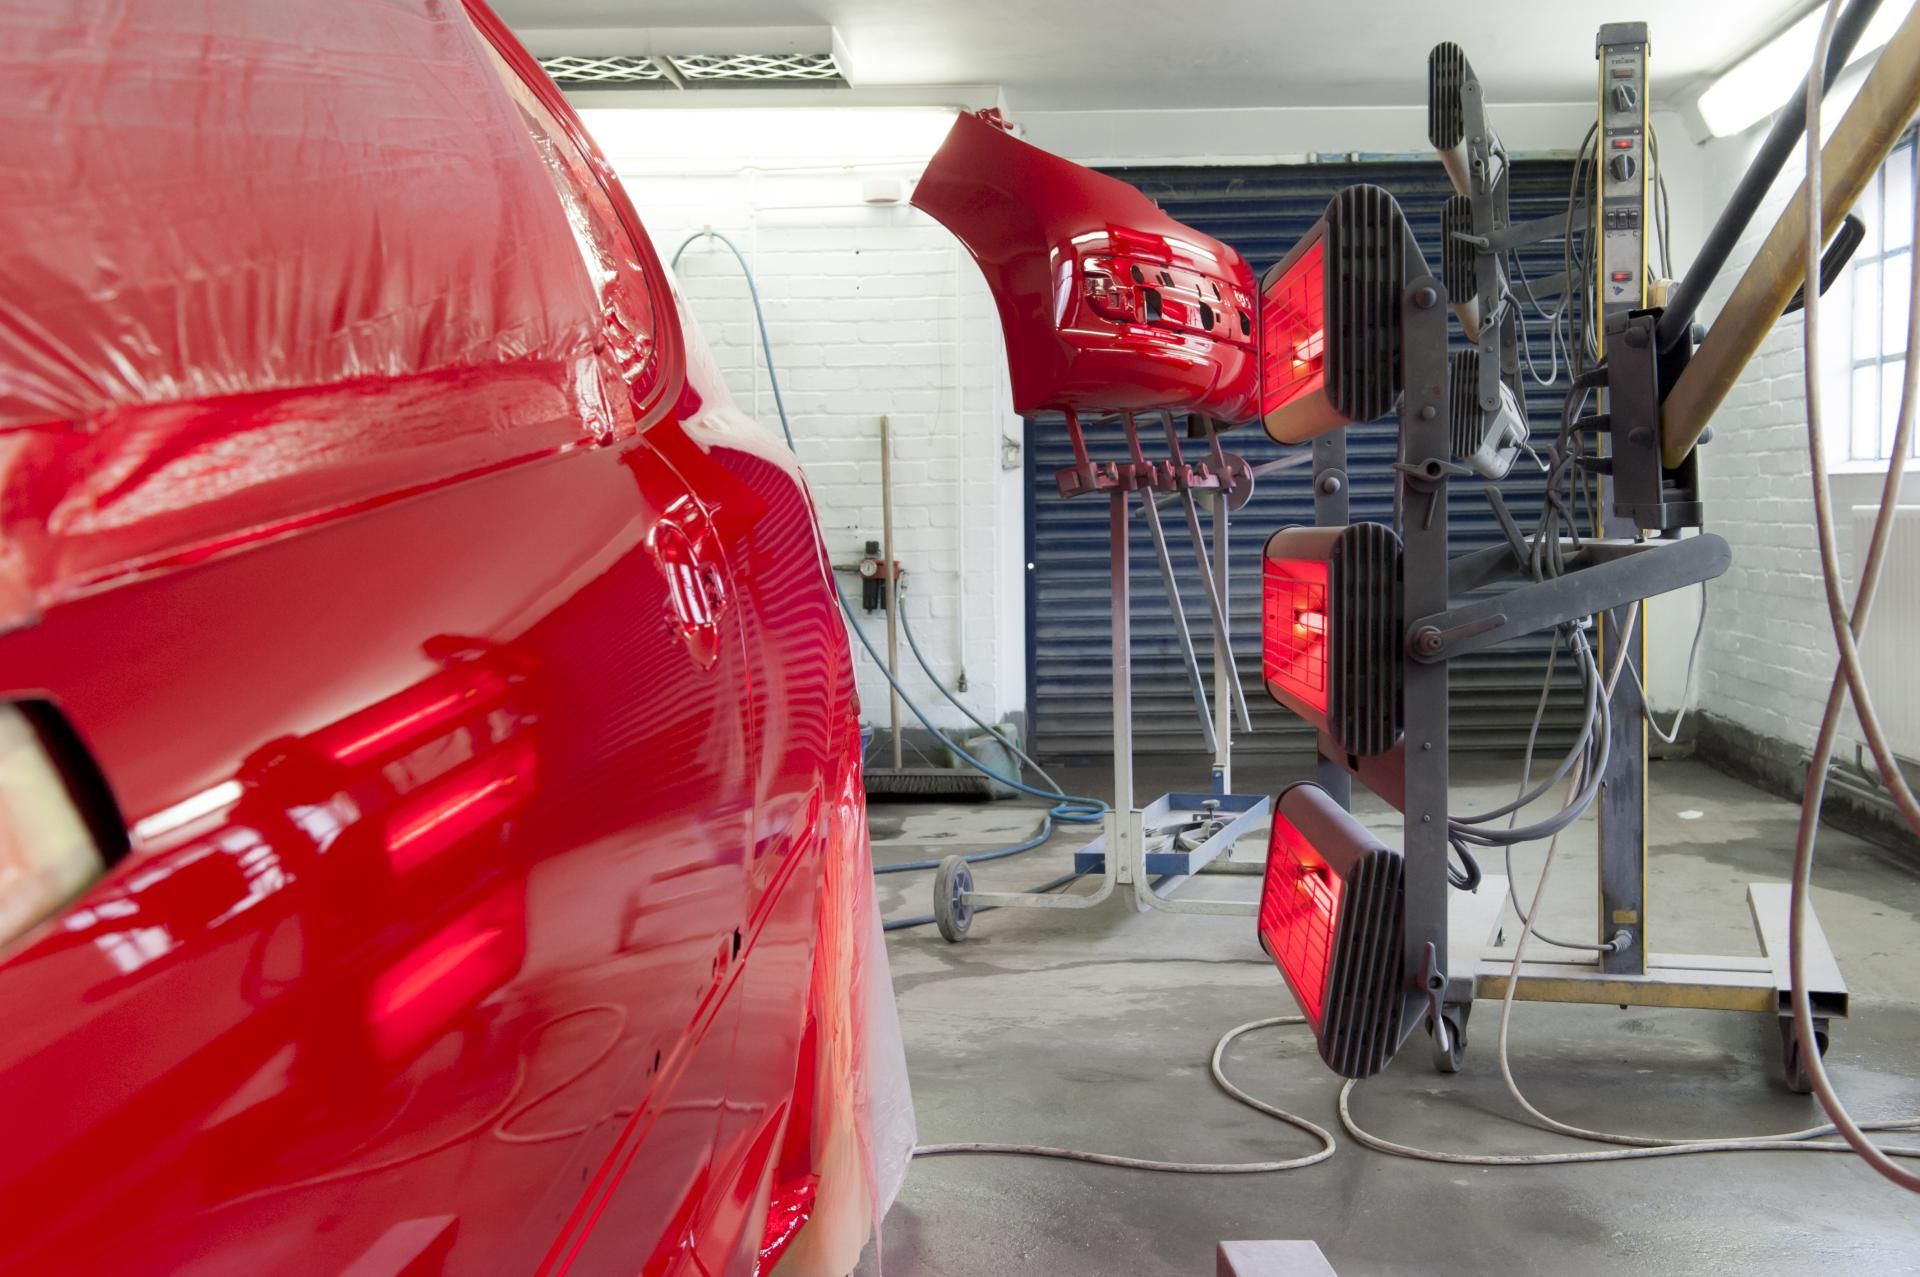 find reliable mot testing centre in bromley contact experts at www rh pinterest com